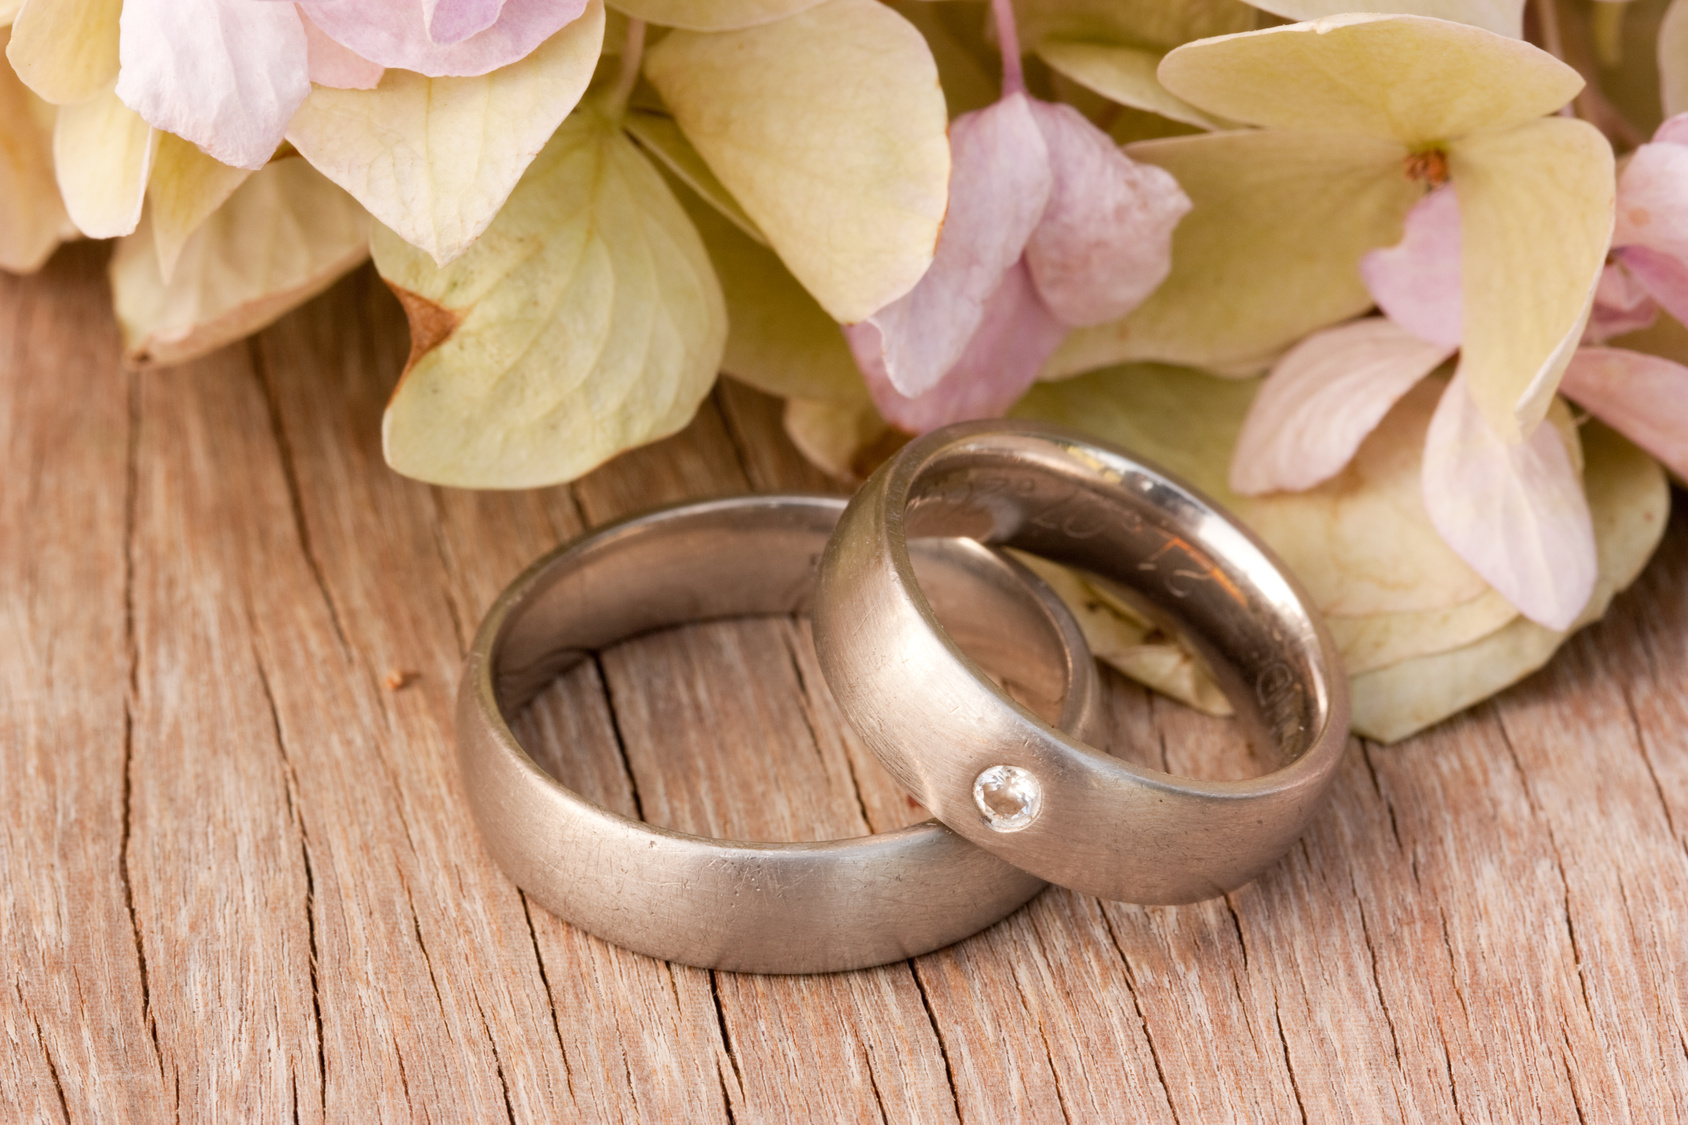 antiqueweddingrings.jpg